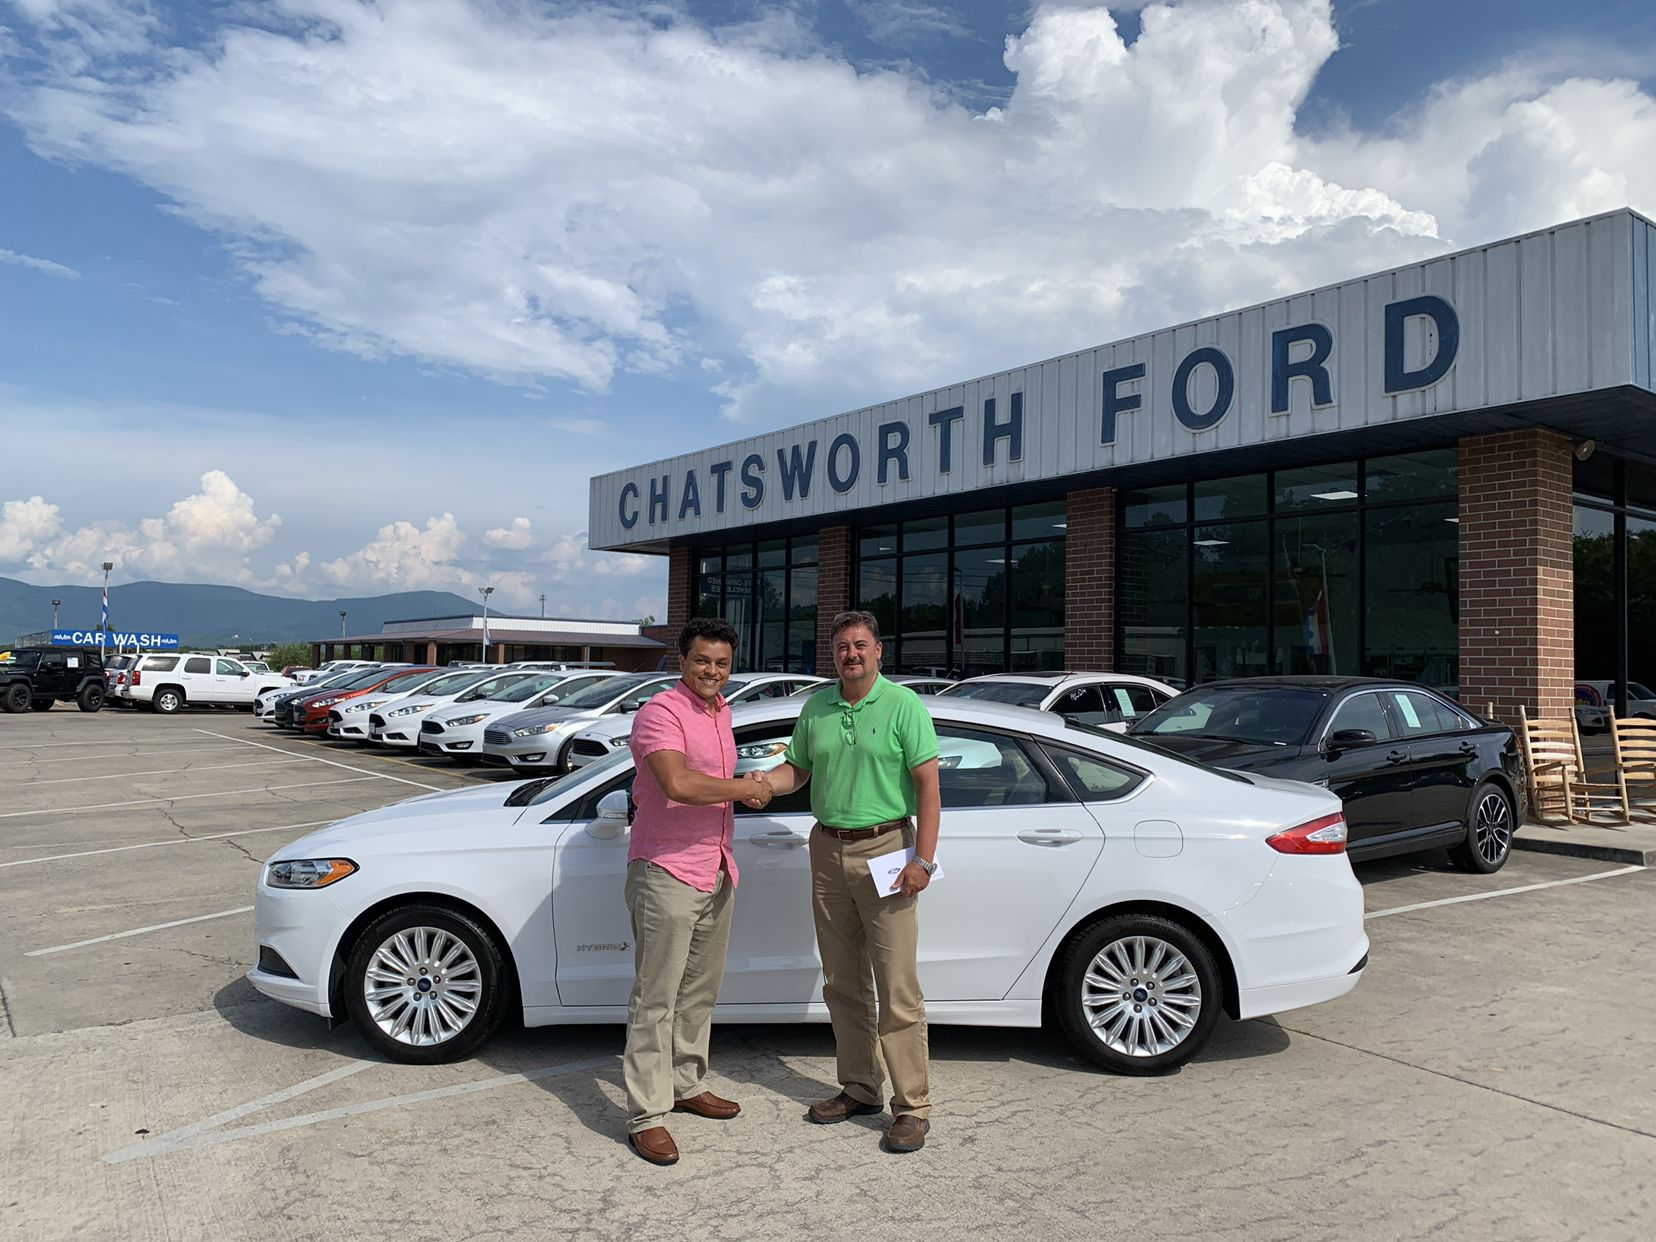 congrats lucas souza of dalton ga on your new 2016 fusion sold by roger lawson we appreciate your business ford news new and used cars ford pinterest